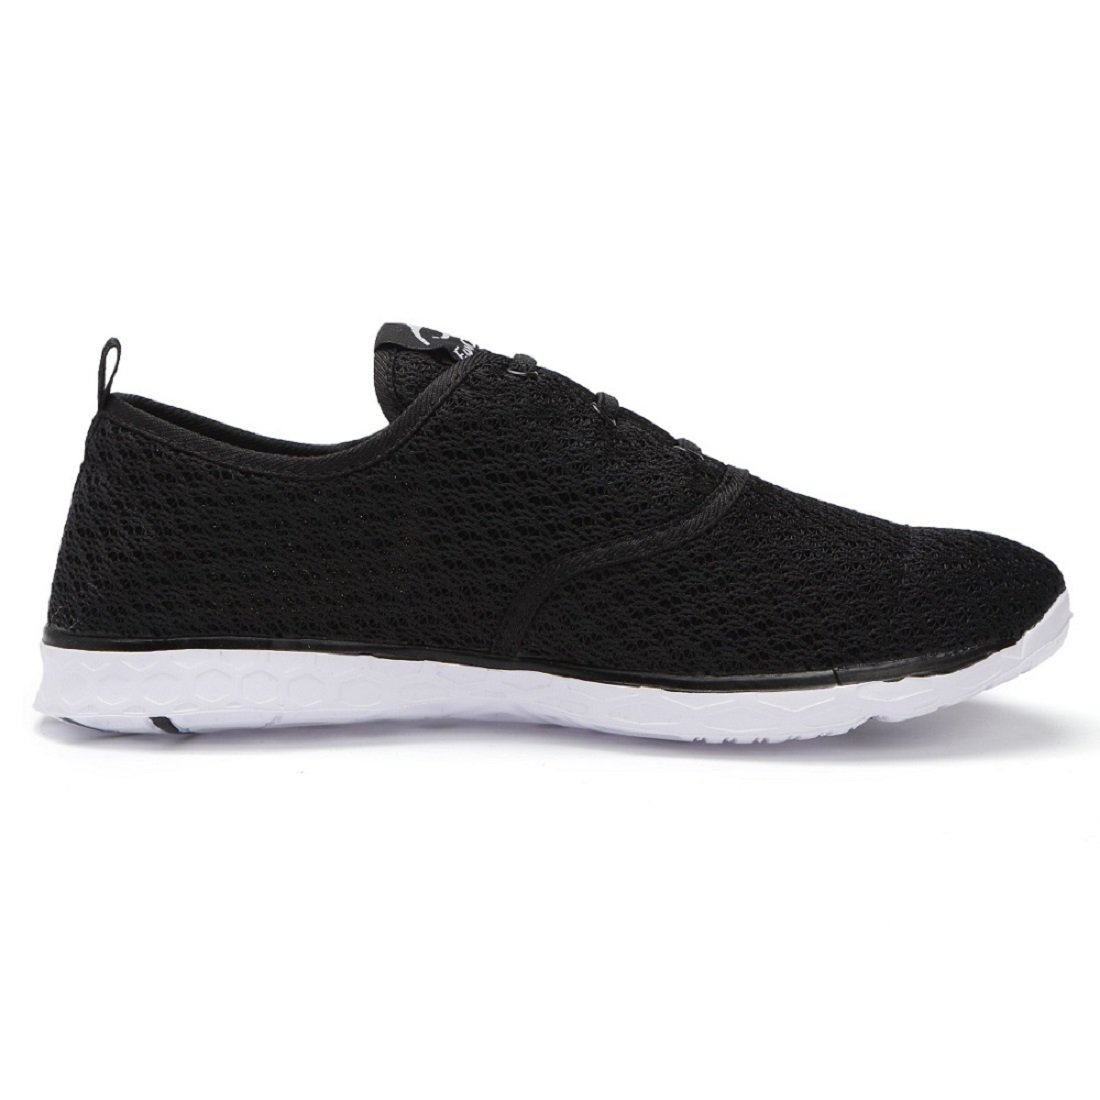 eyeones Womens Water Shoes Swim Sneakers Athletic Shoes Sport Slip On Surfing Quick Drying Mesh Rafting Walking Shoes Black White 8.5 Women US SW04W-BW7